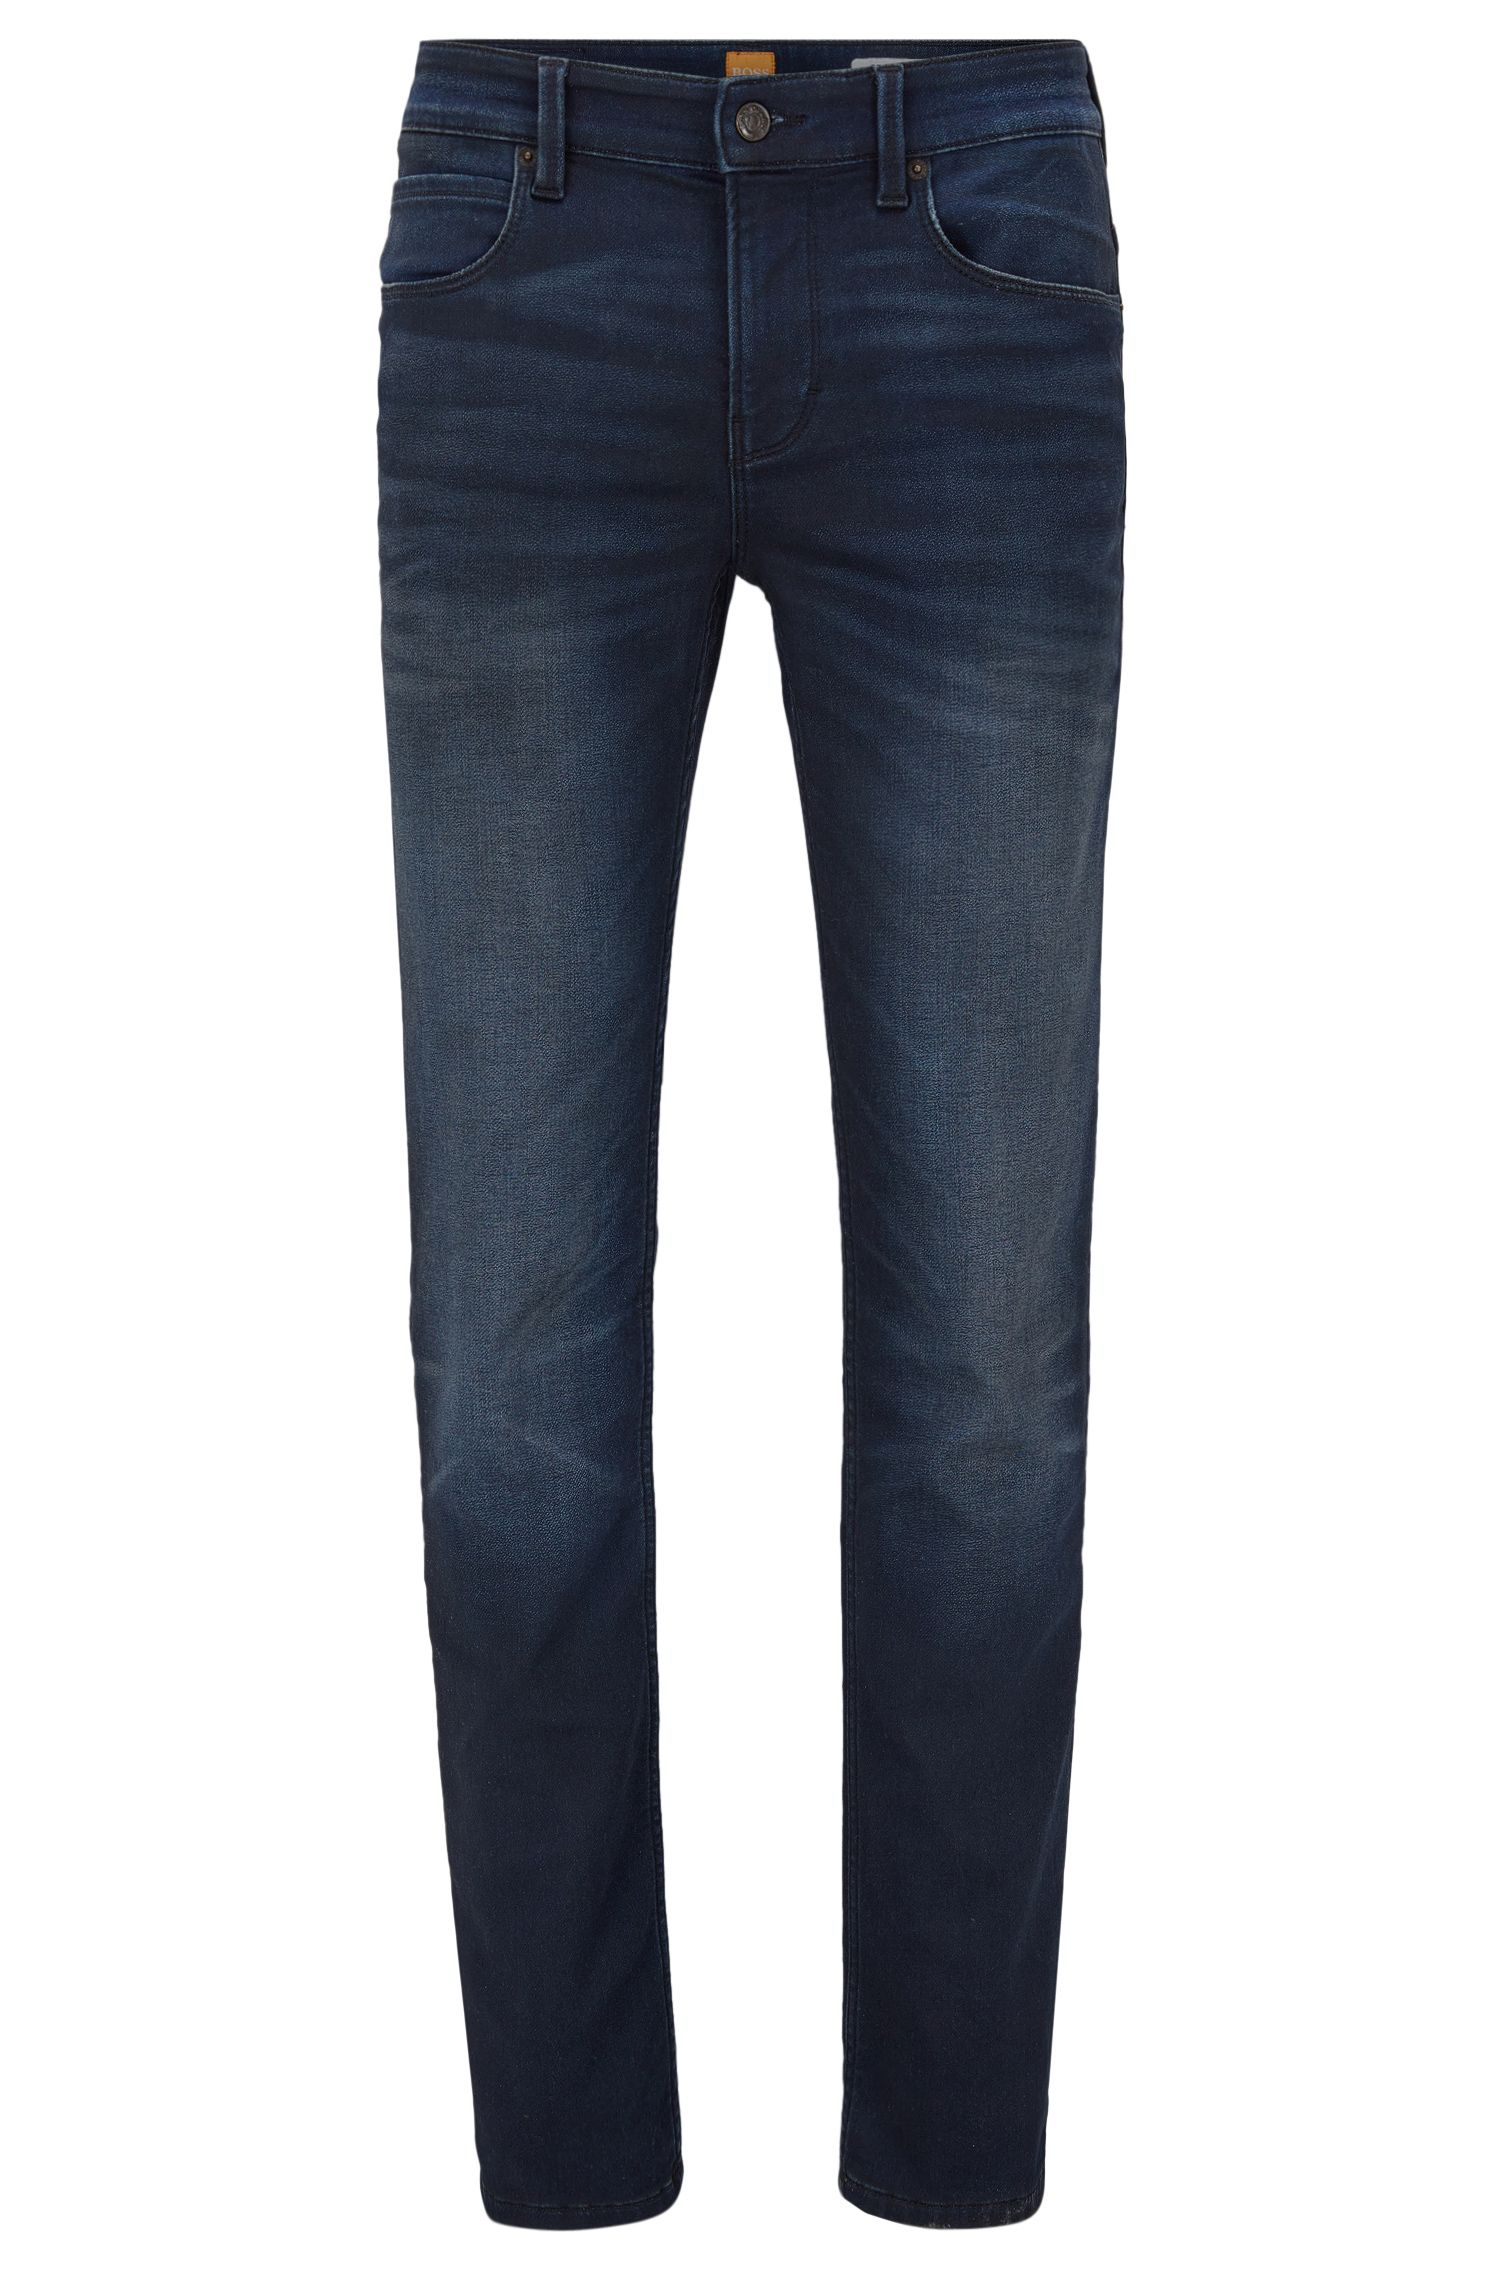 Vaqueros slim fit en denim de punto